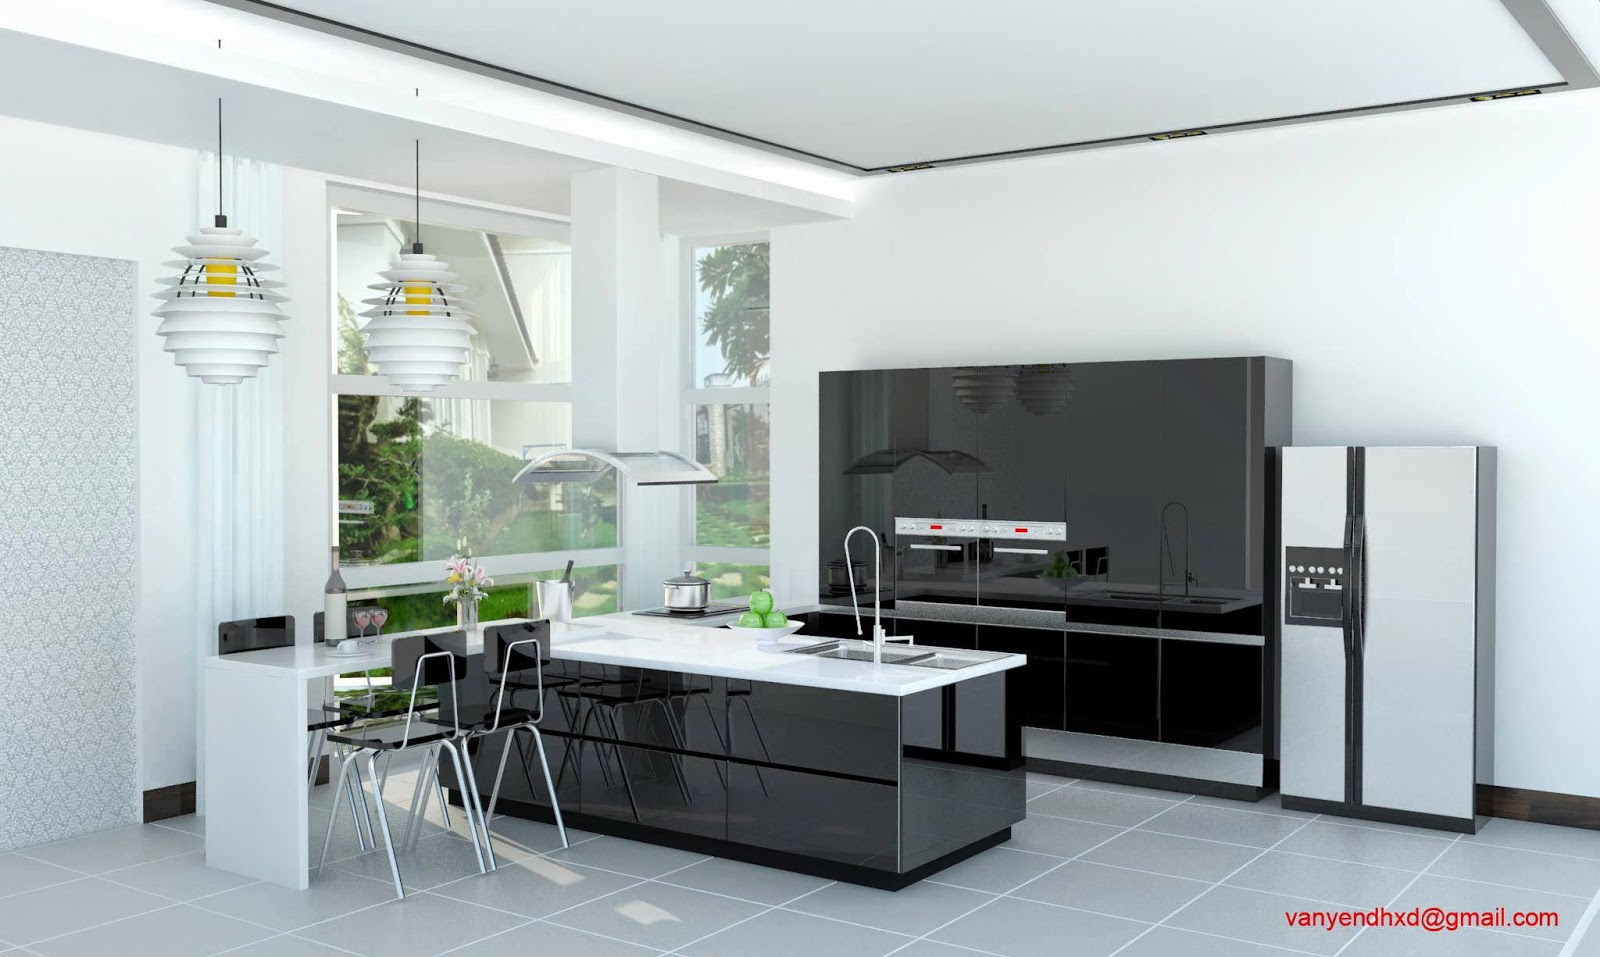 Free Sketchup 3d Model Vray Setting Kitchen #6